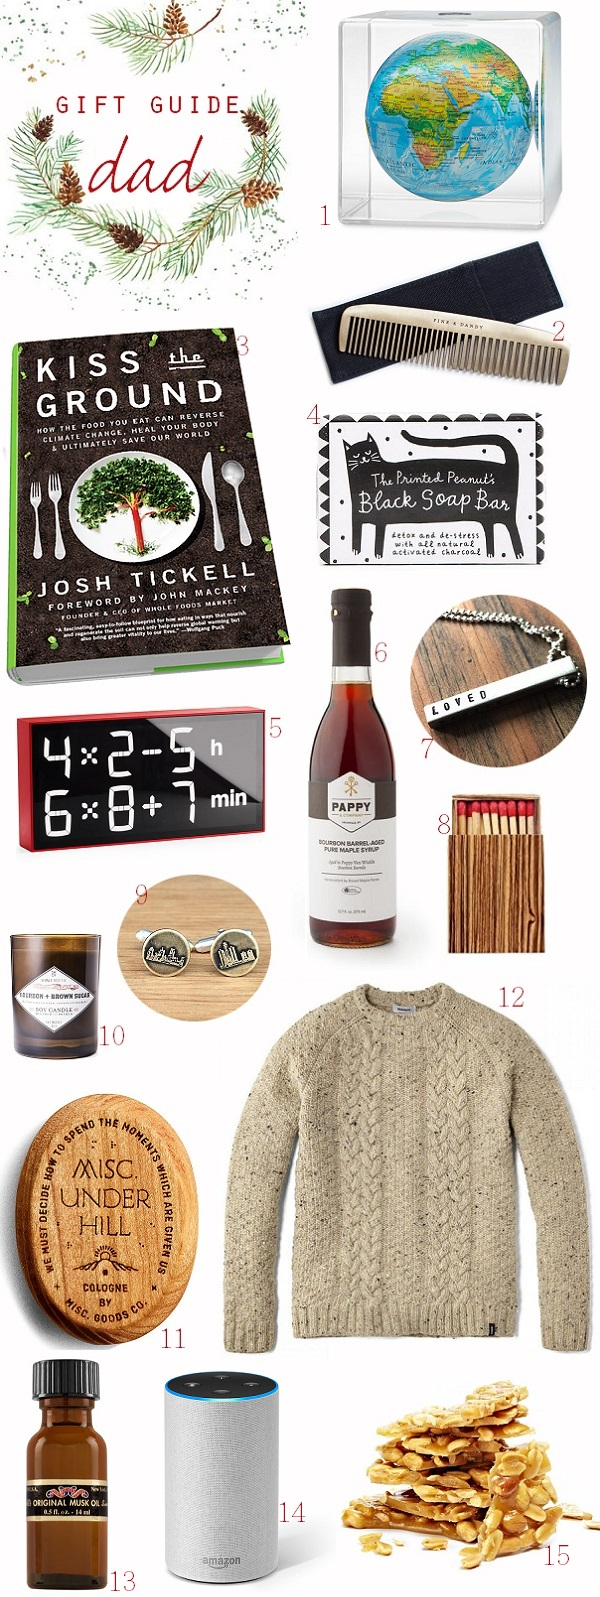 exPress-o: Christmas Gift Guide #4: Dad